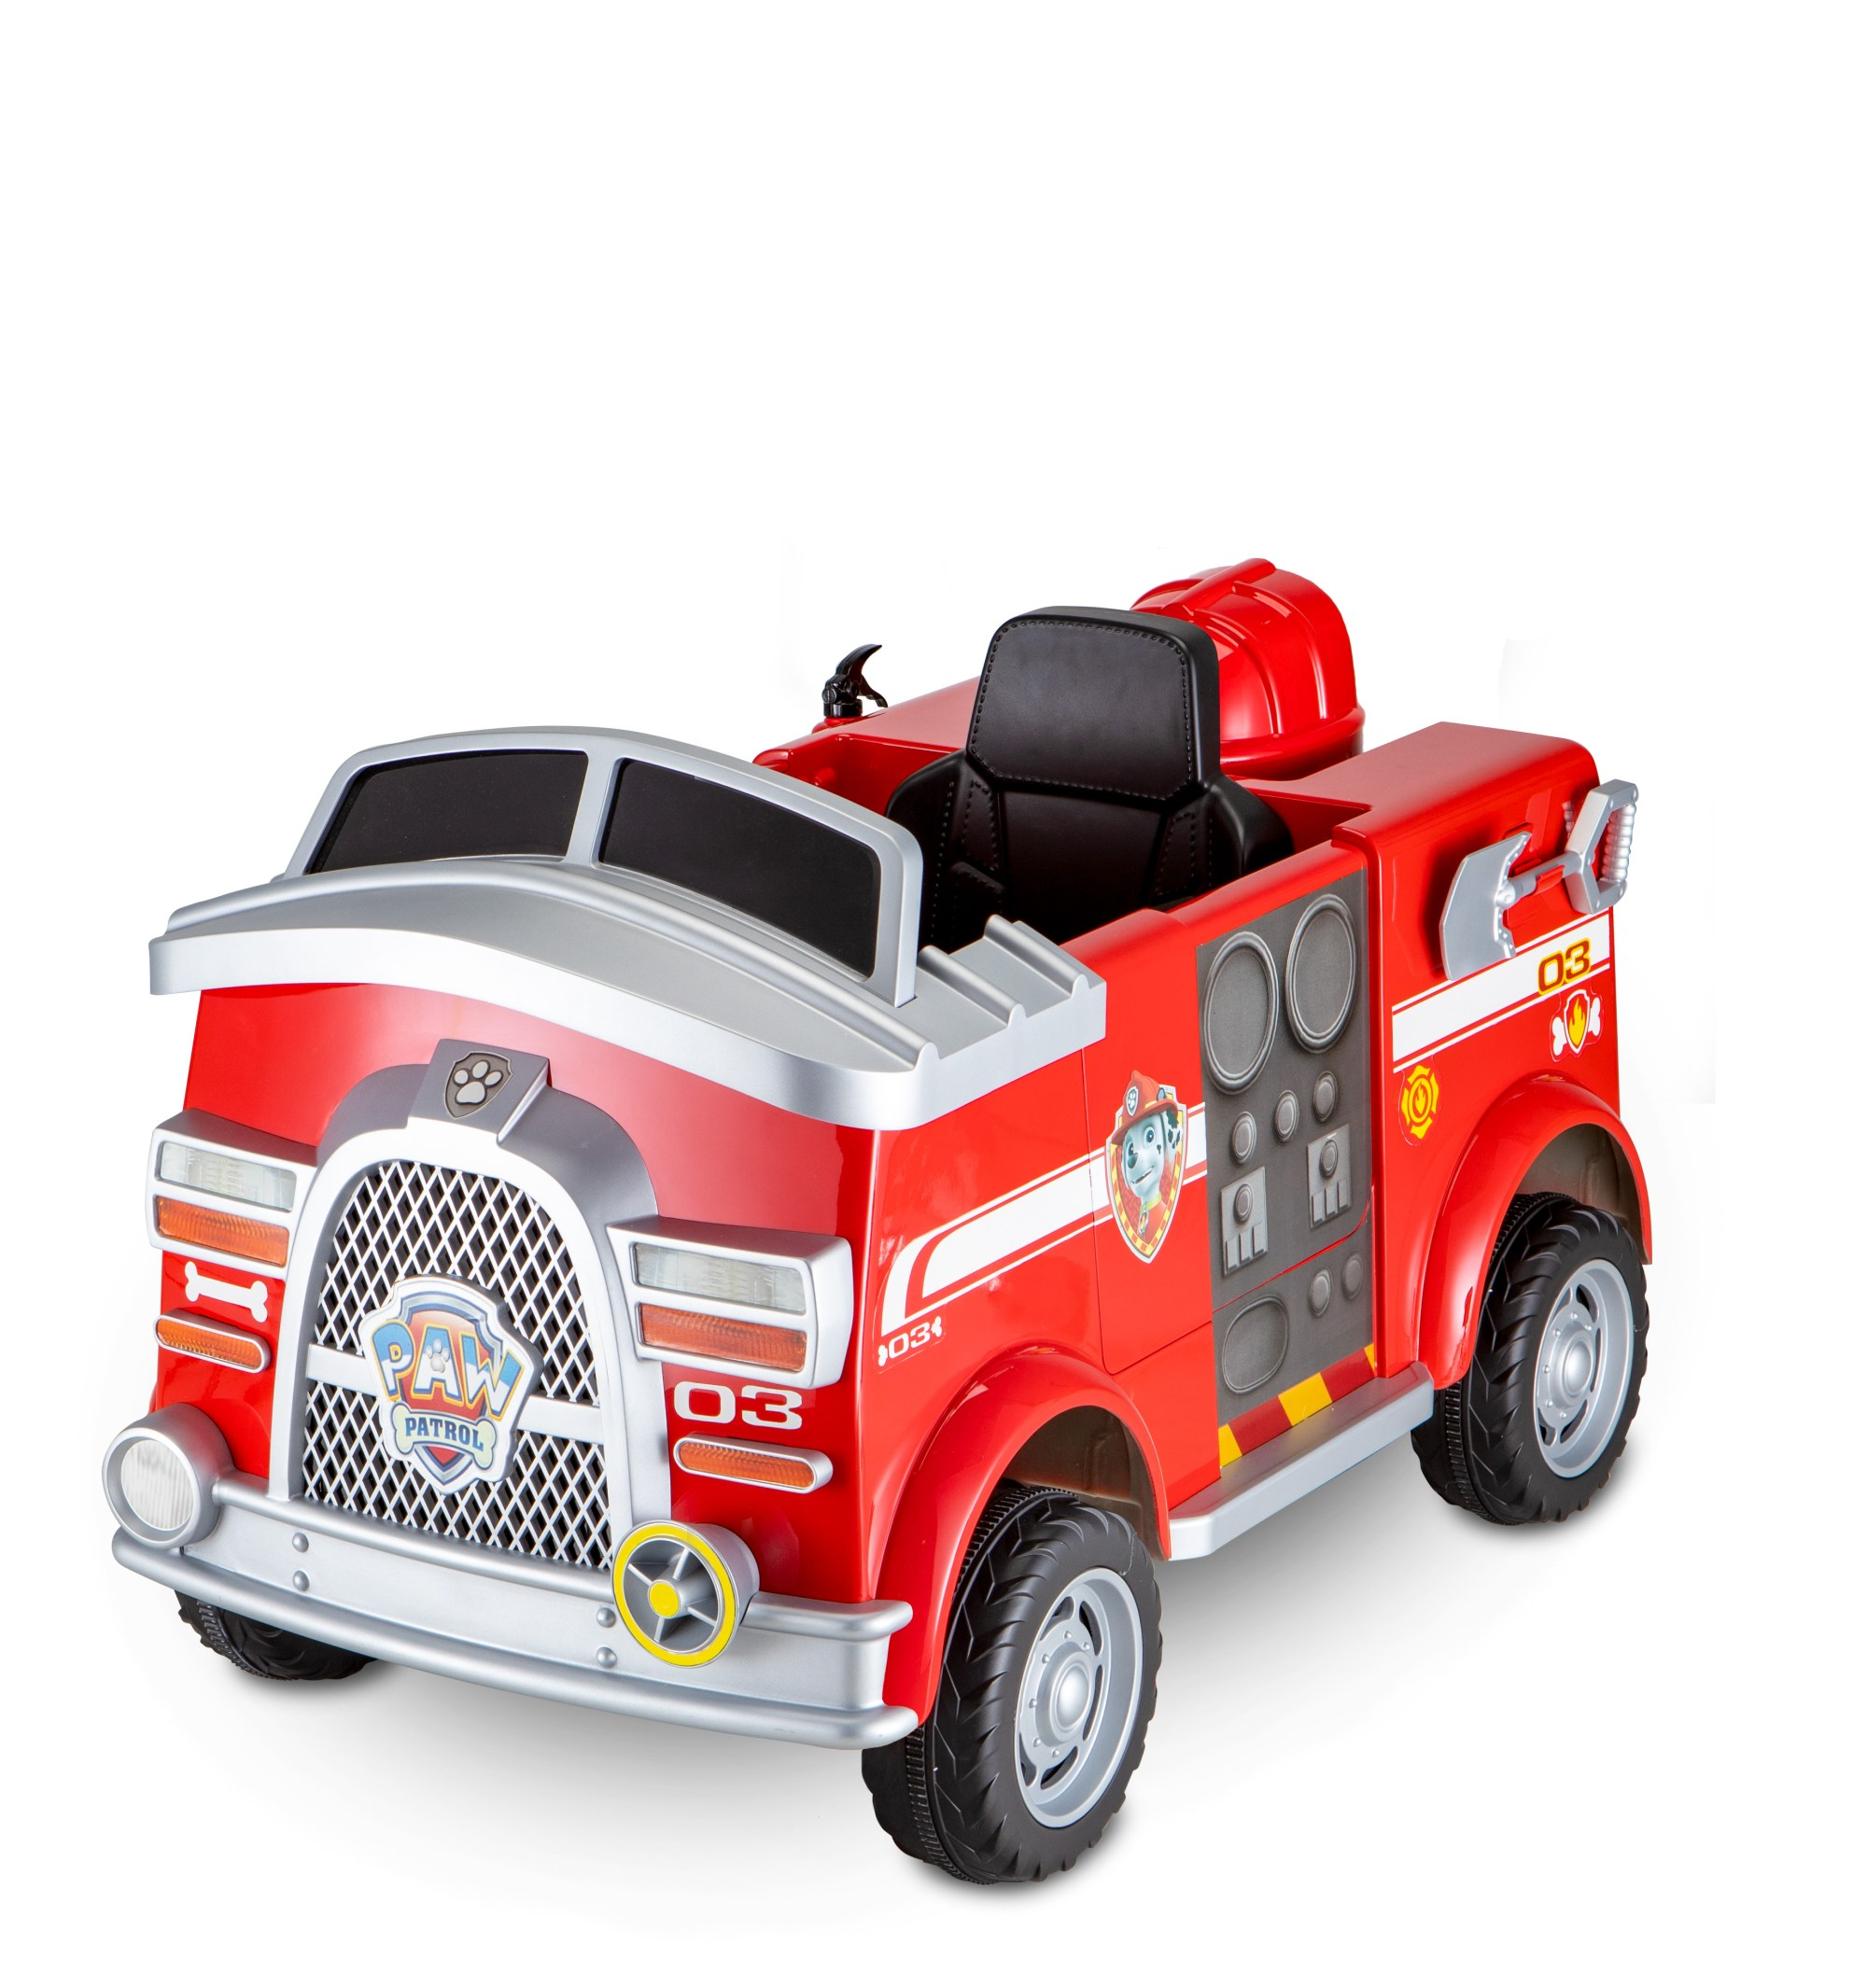 hight resolution of paw patrol fire truck 6 volt powered ride on toy by kid trax marshall rescue walmart com